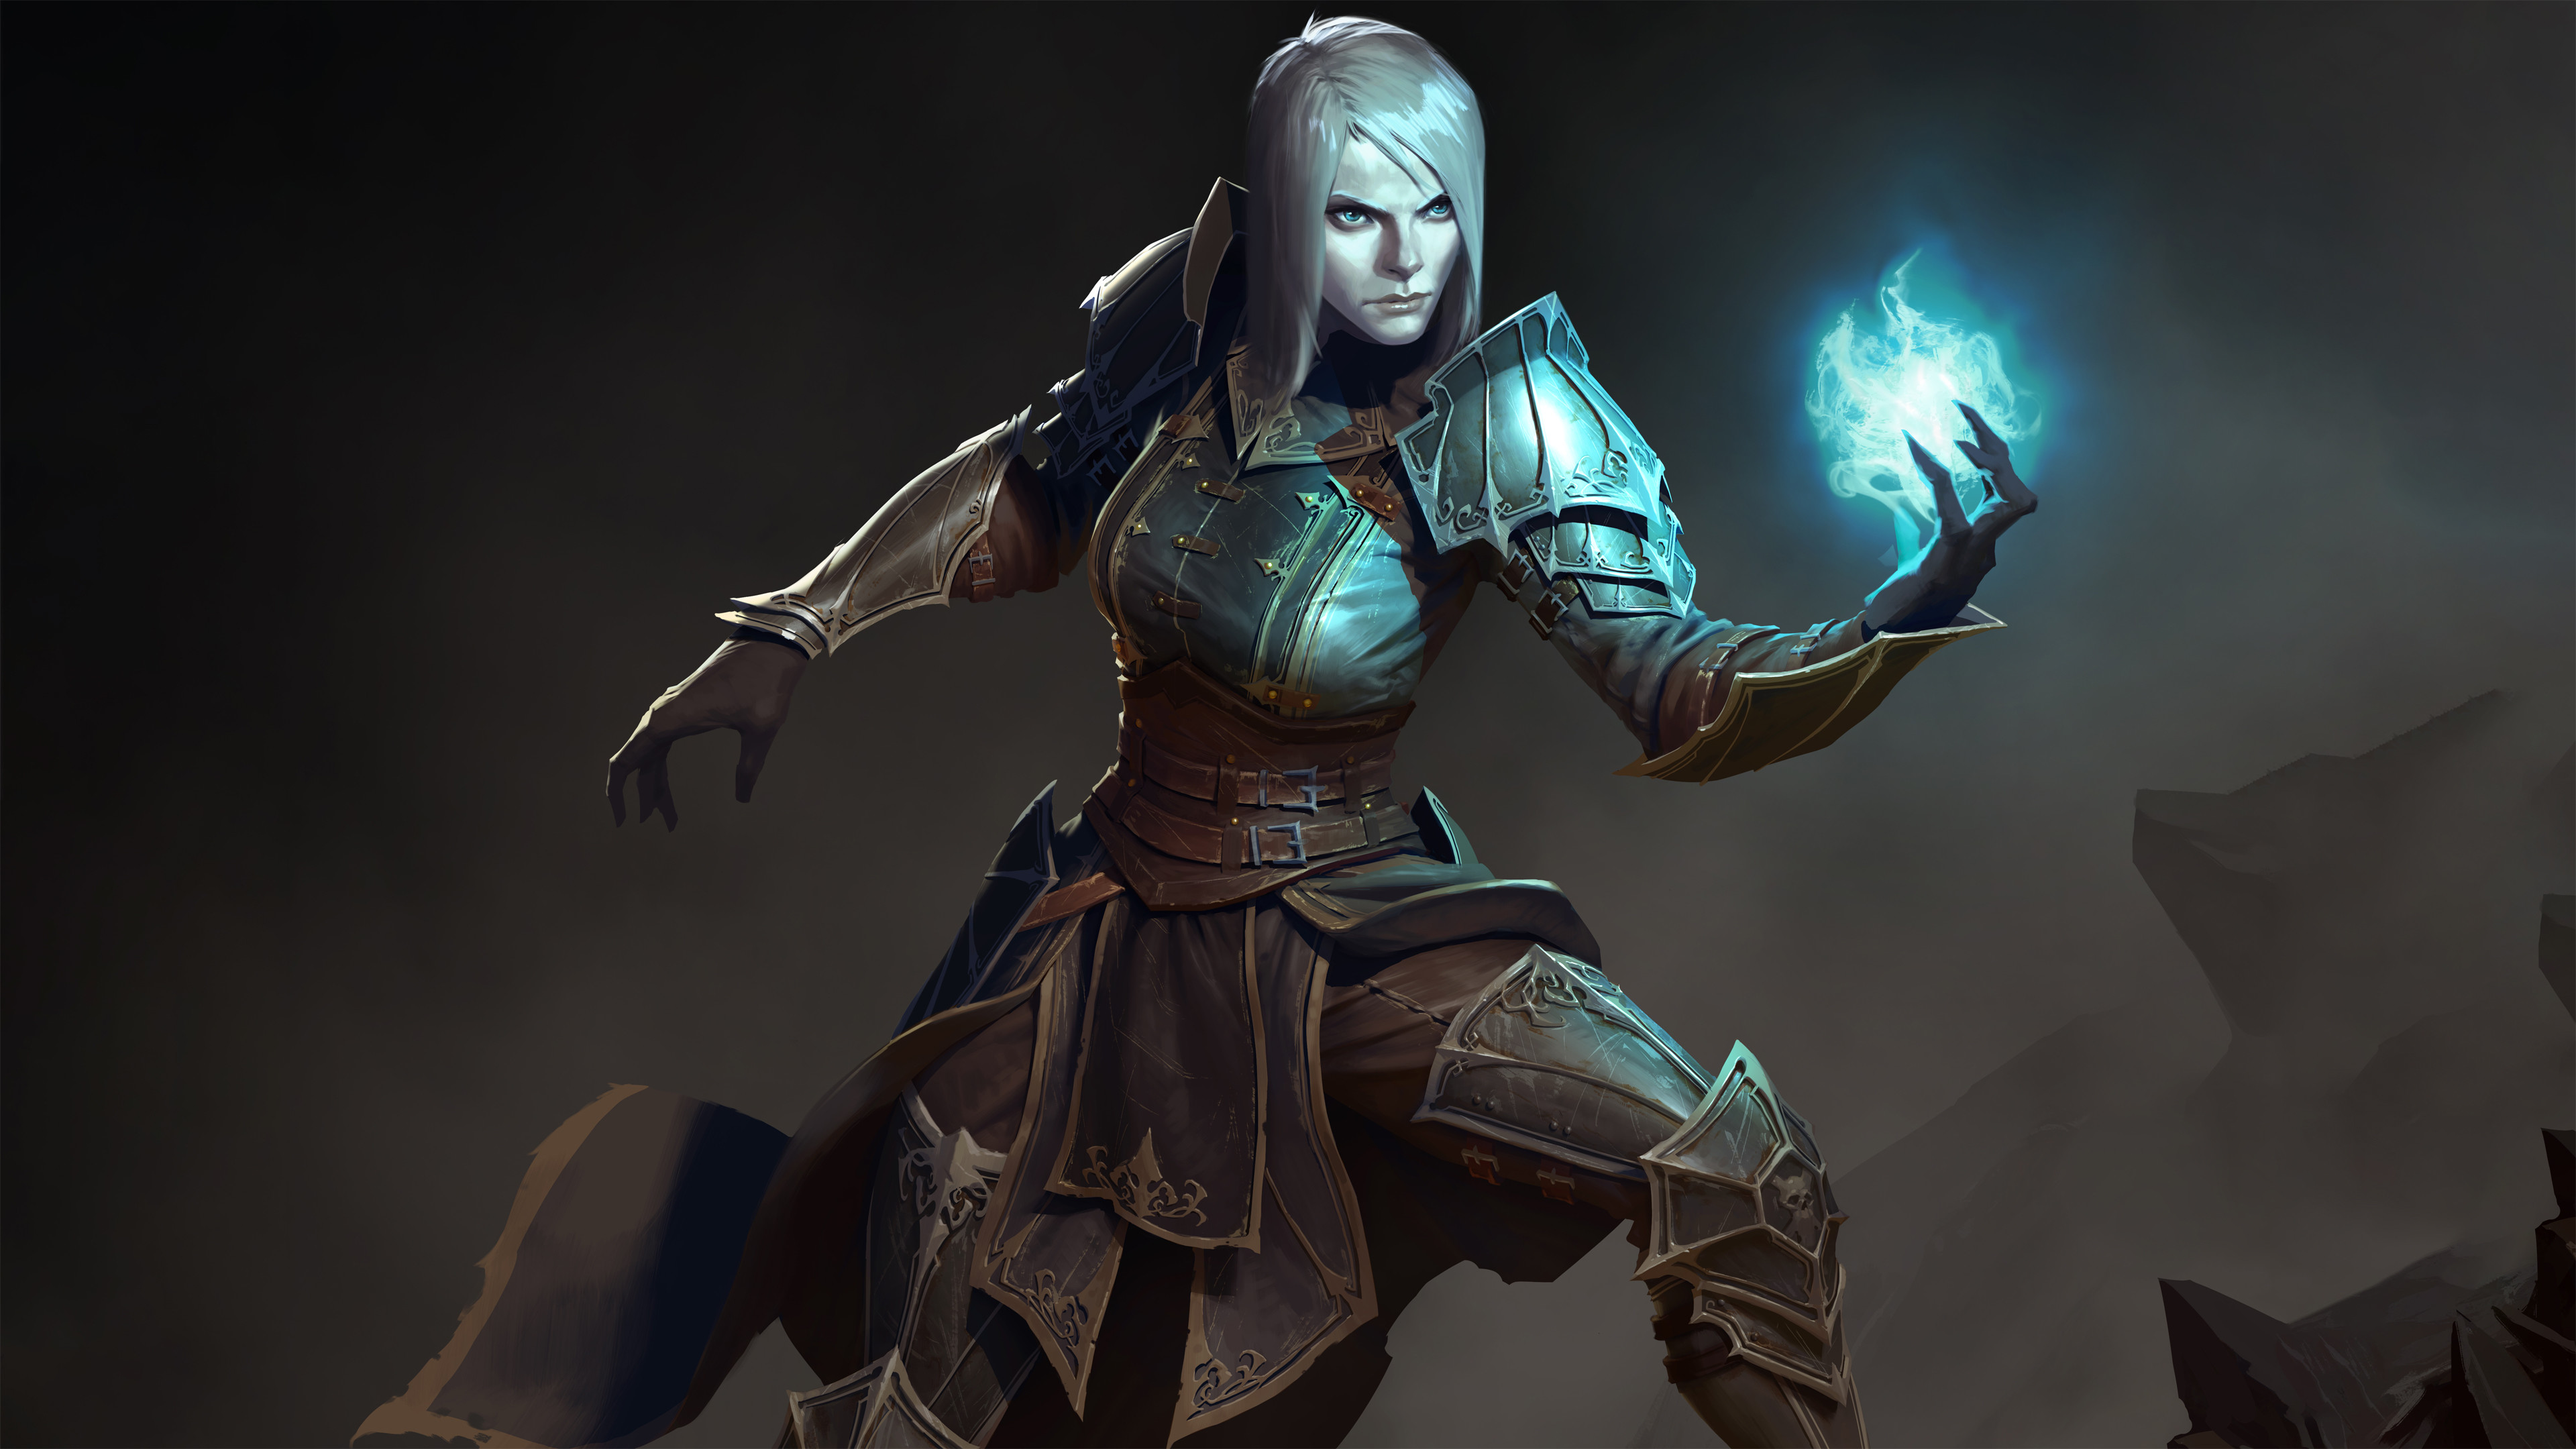 Res: 3840x2160, Download Wallpaper · DiabloNecromancer